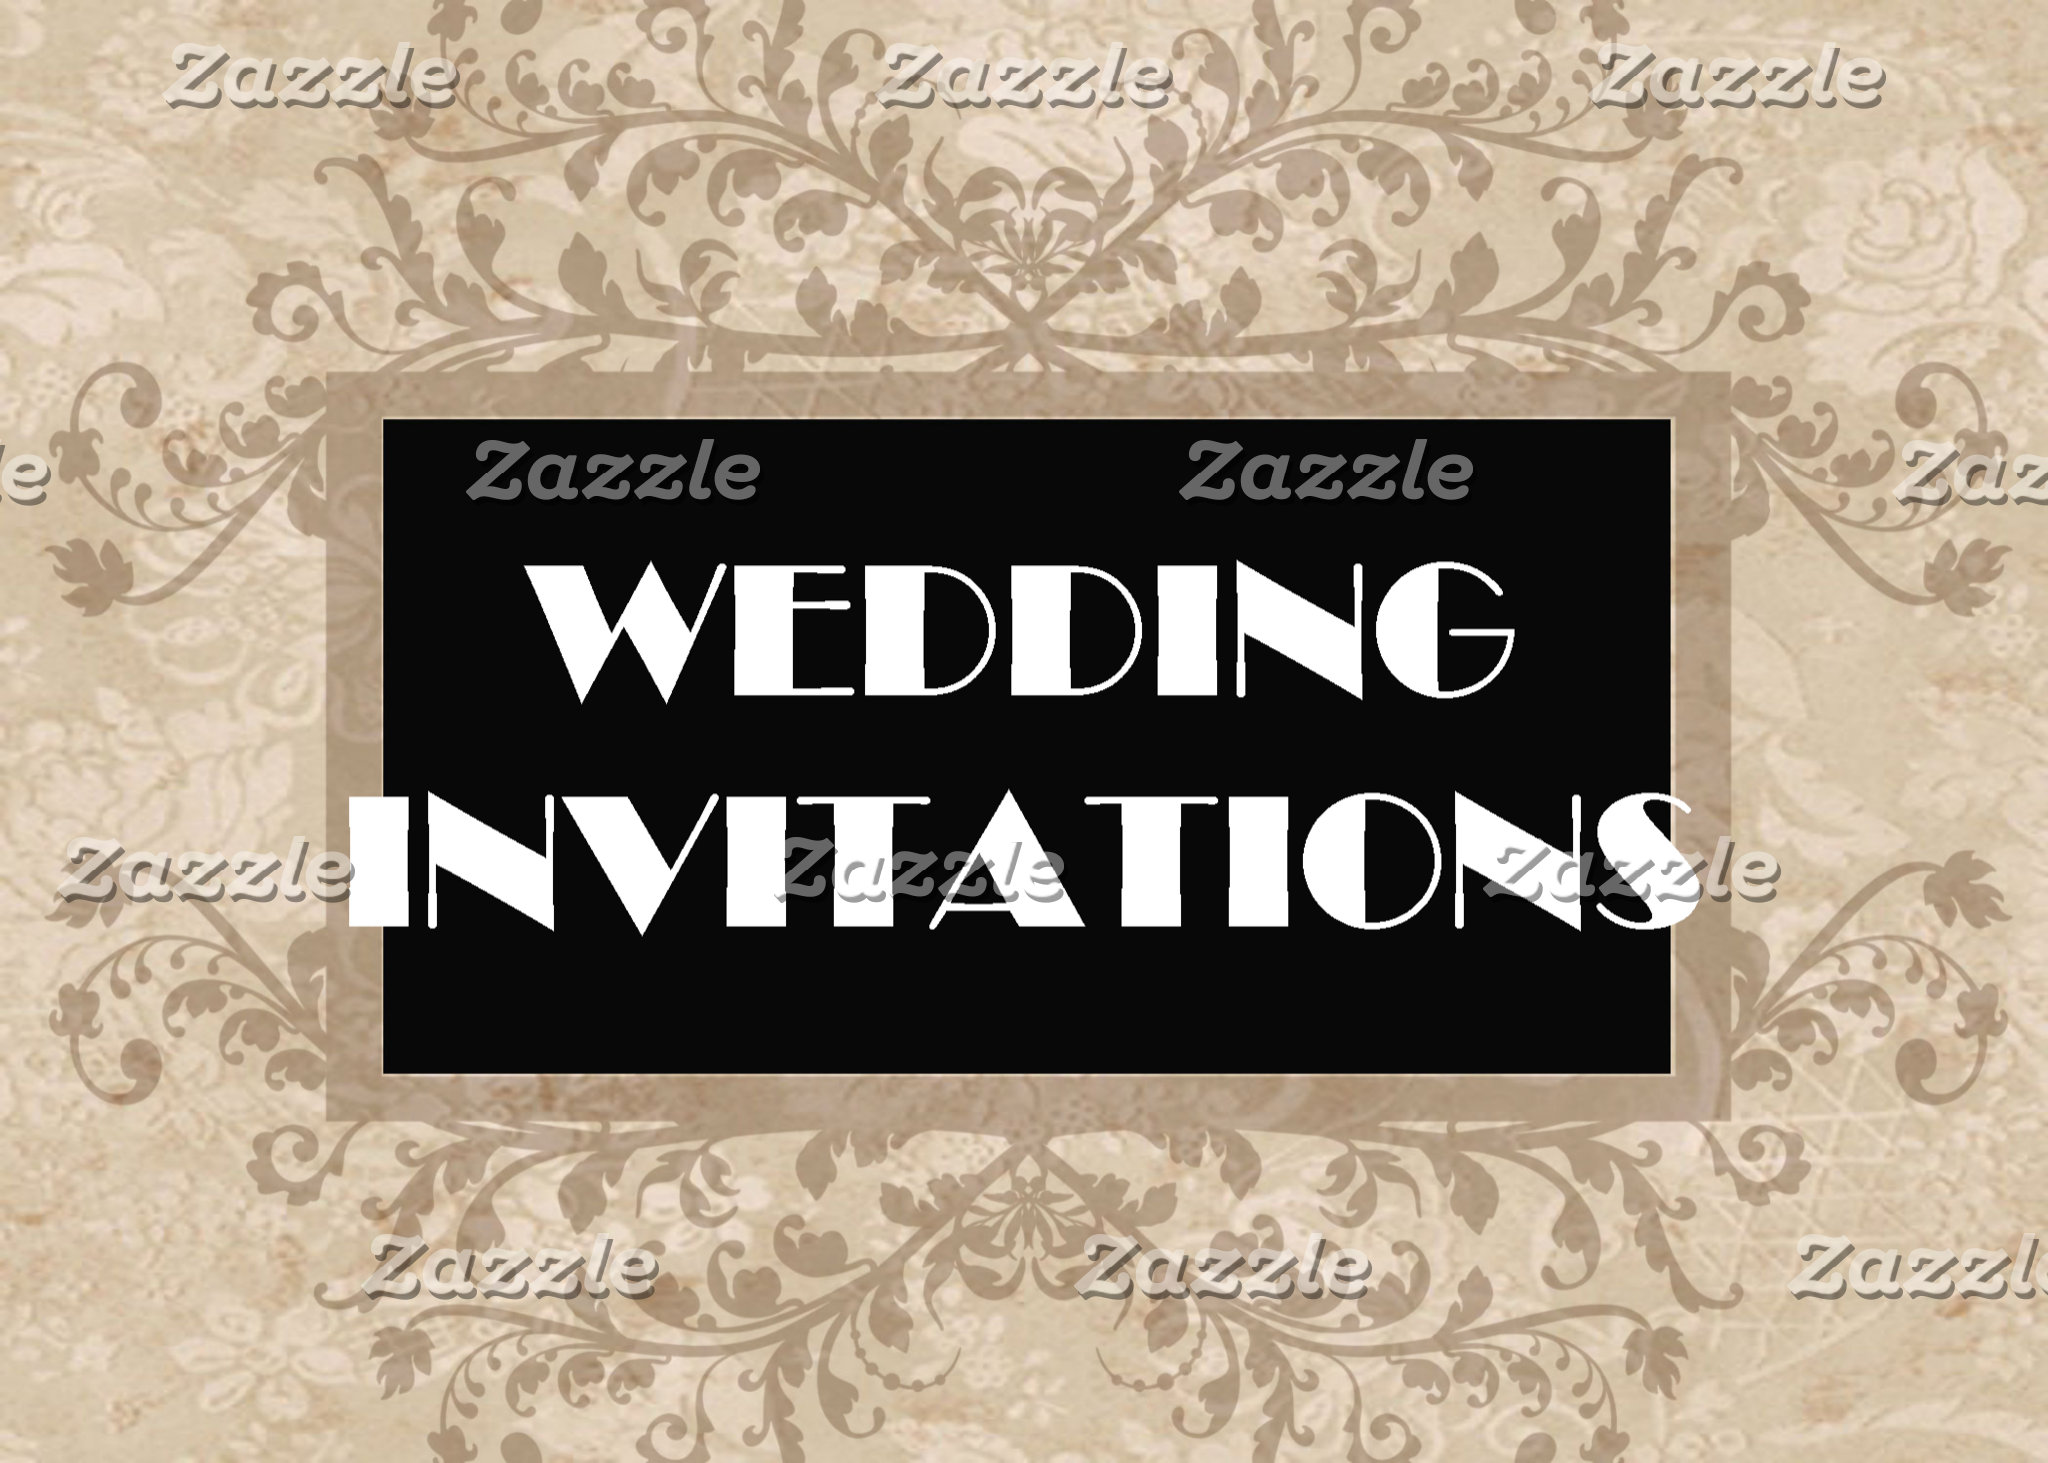 WEDDING INVITATIONS, LOVE IS LOVE